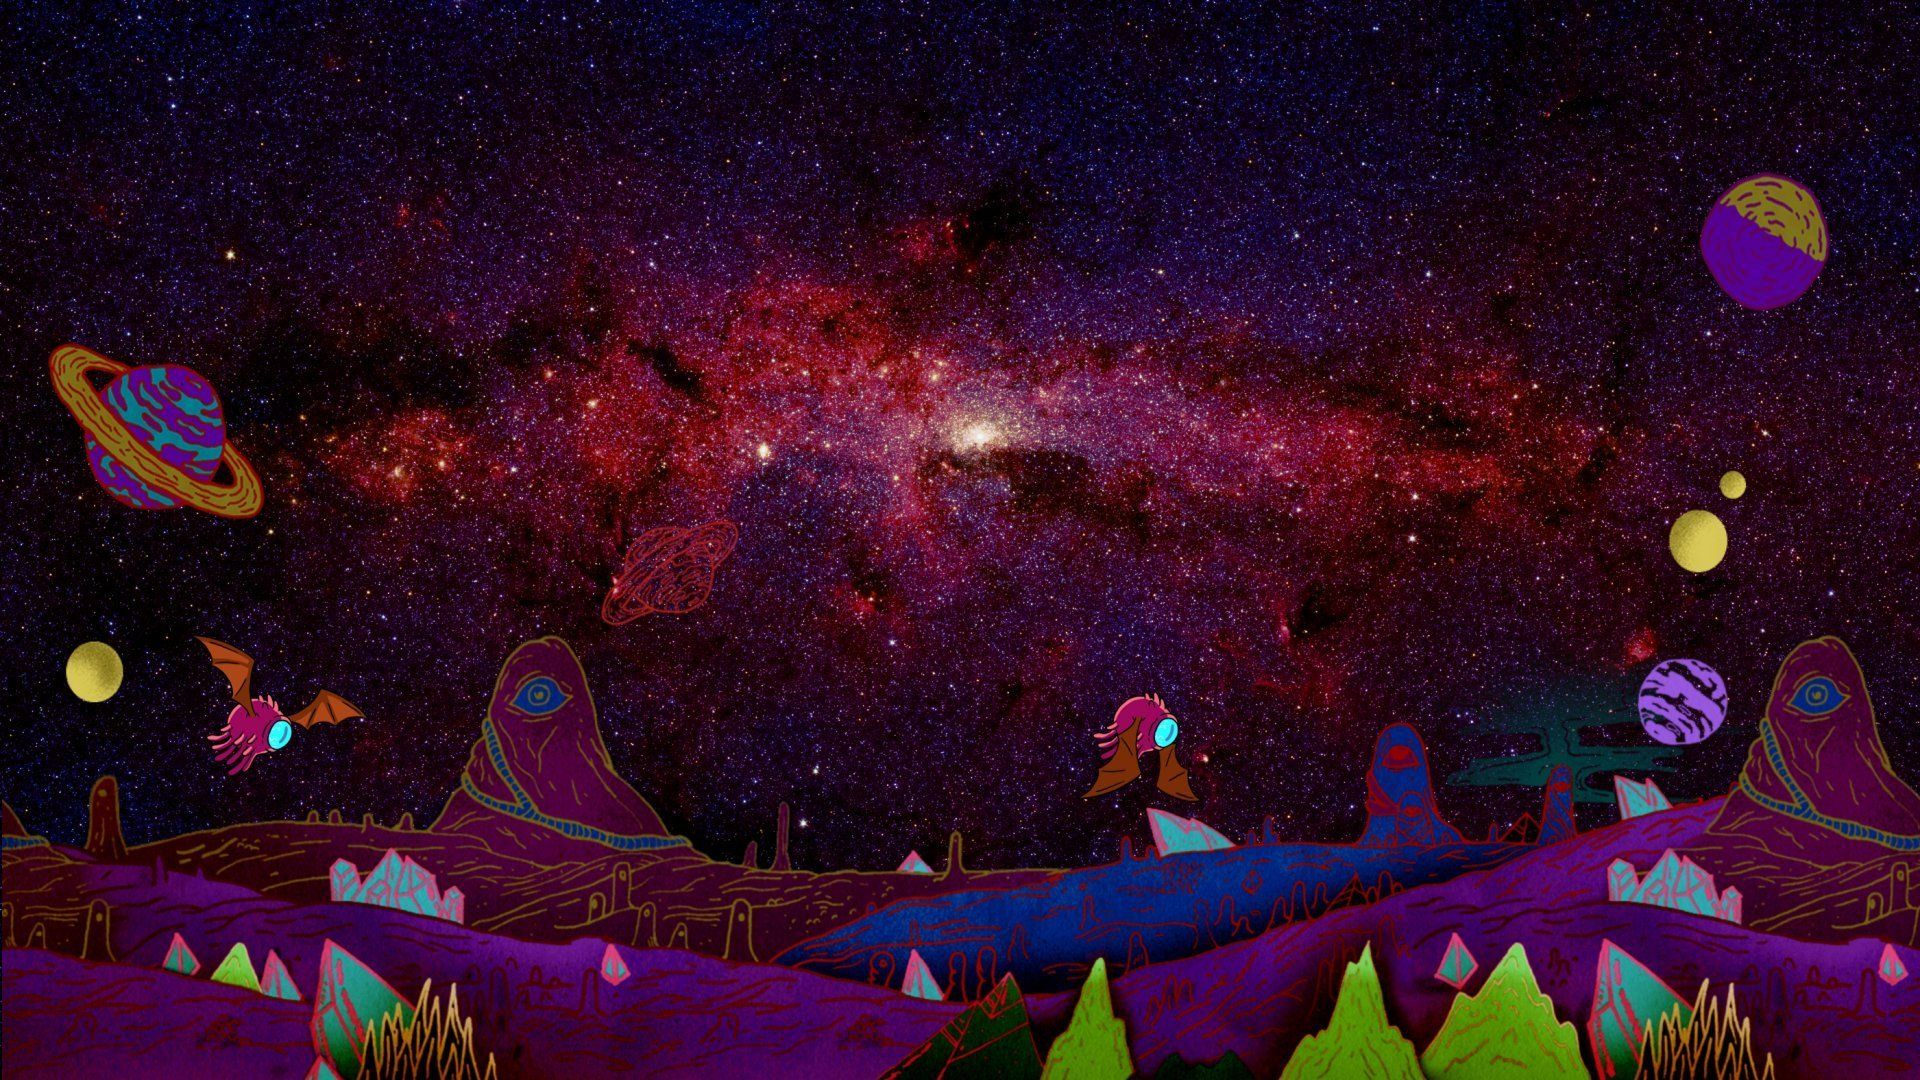 Rick And Morty Tv Show Hd Wallpaper In 2020 Cartoon Wallpaper Rick And Morty Wallpaper Space